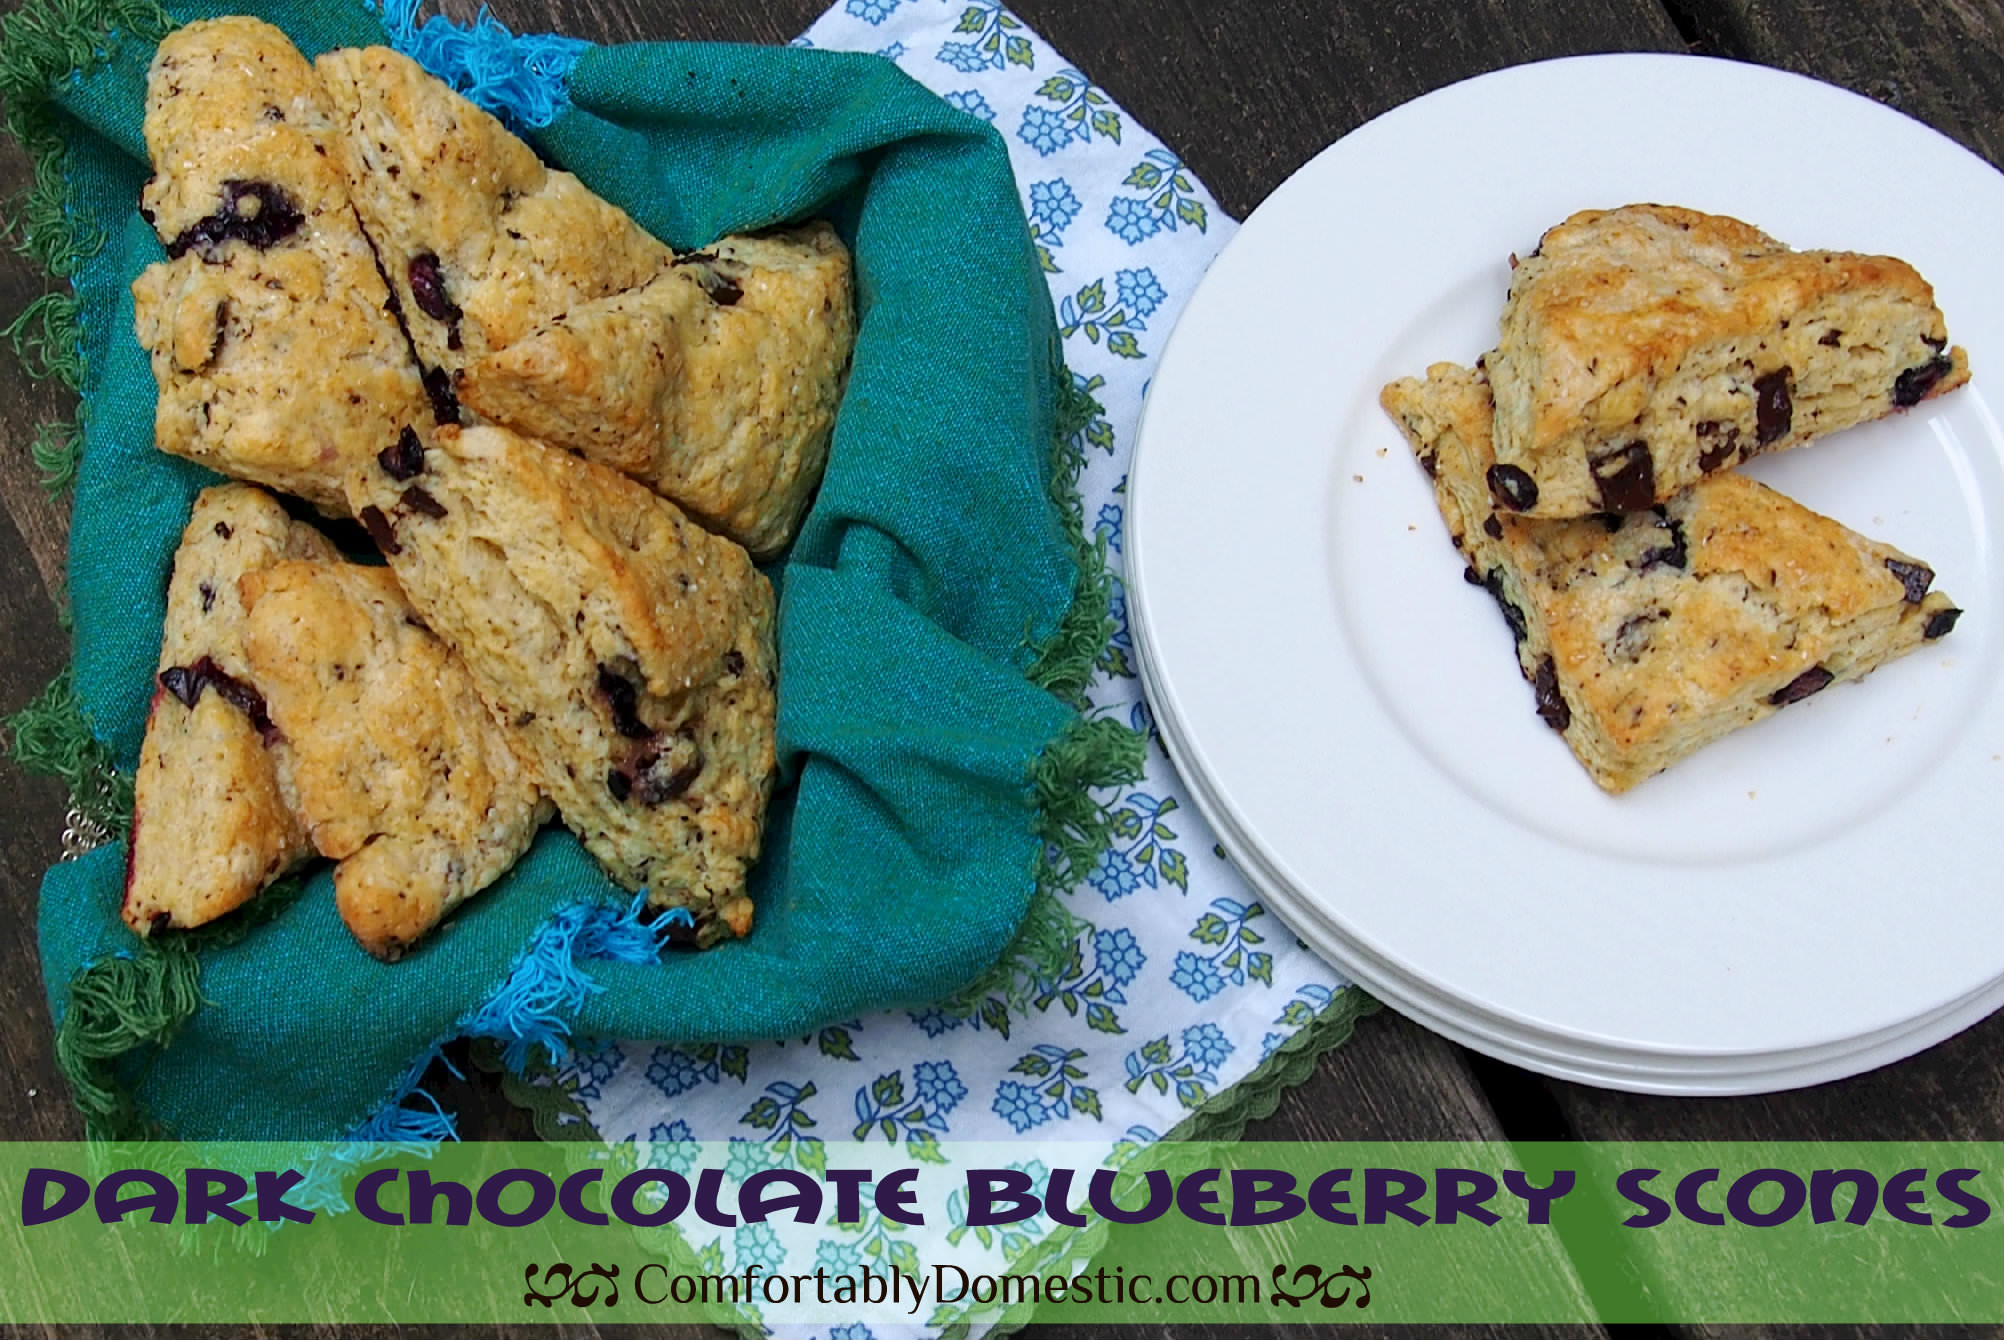 Dark Chocolate Blueberry Scones | ComfortablyDomestic.com